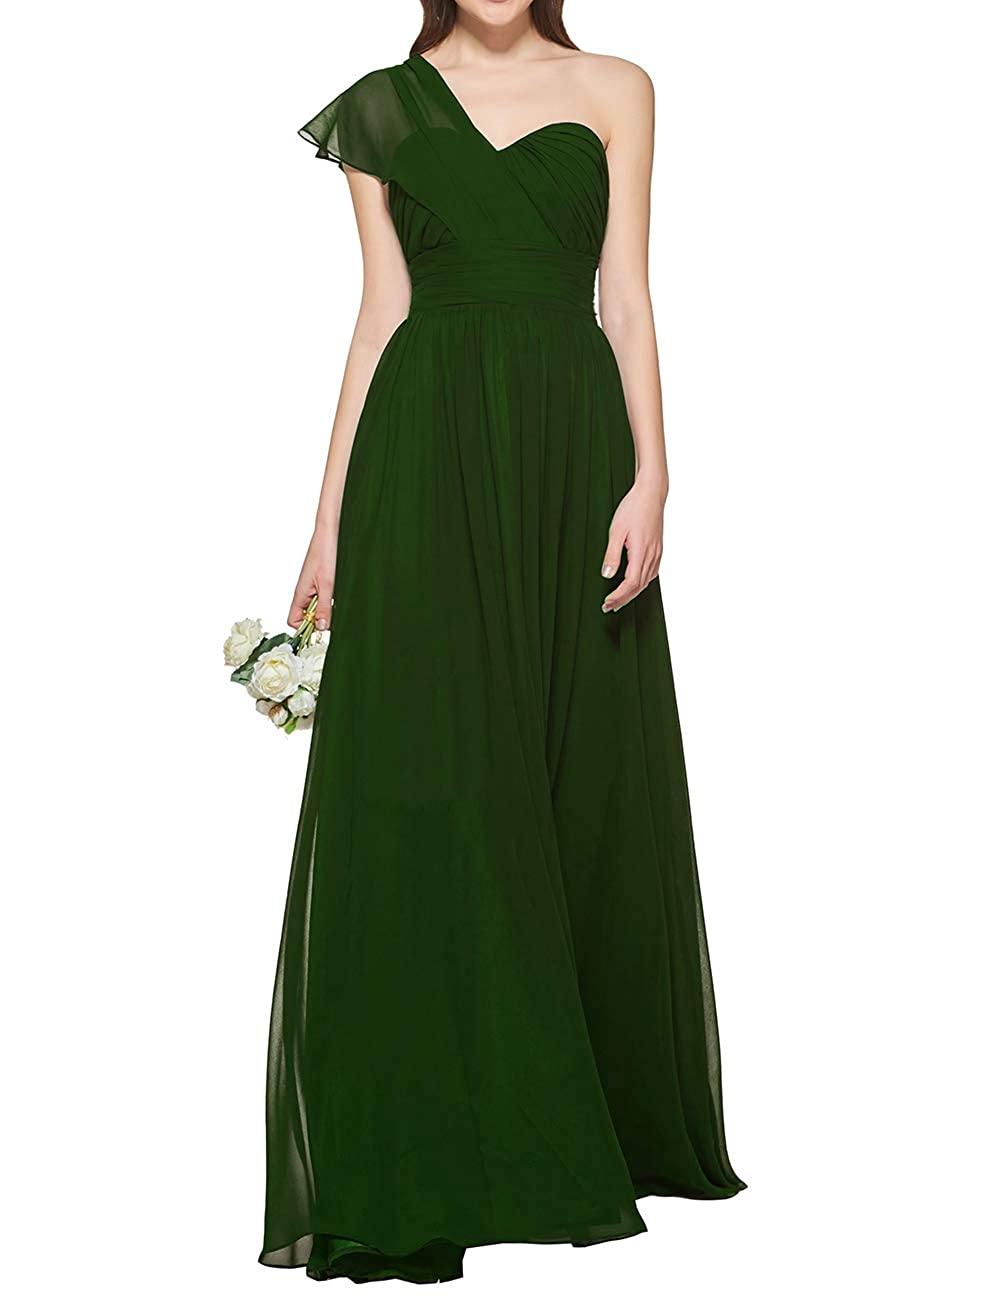 Dark Green Uther Women's One Shoulder Bridesmaid Dress Long Prom Evening Gown A Line